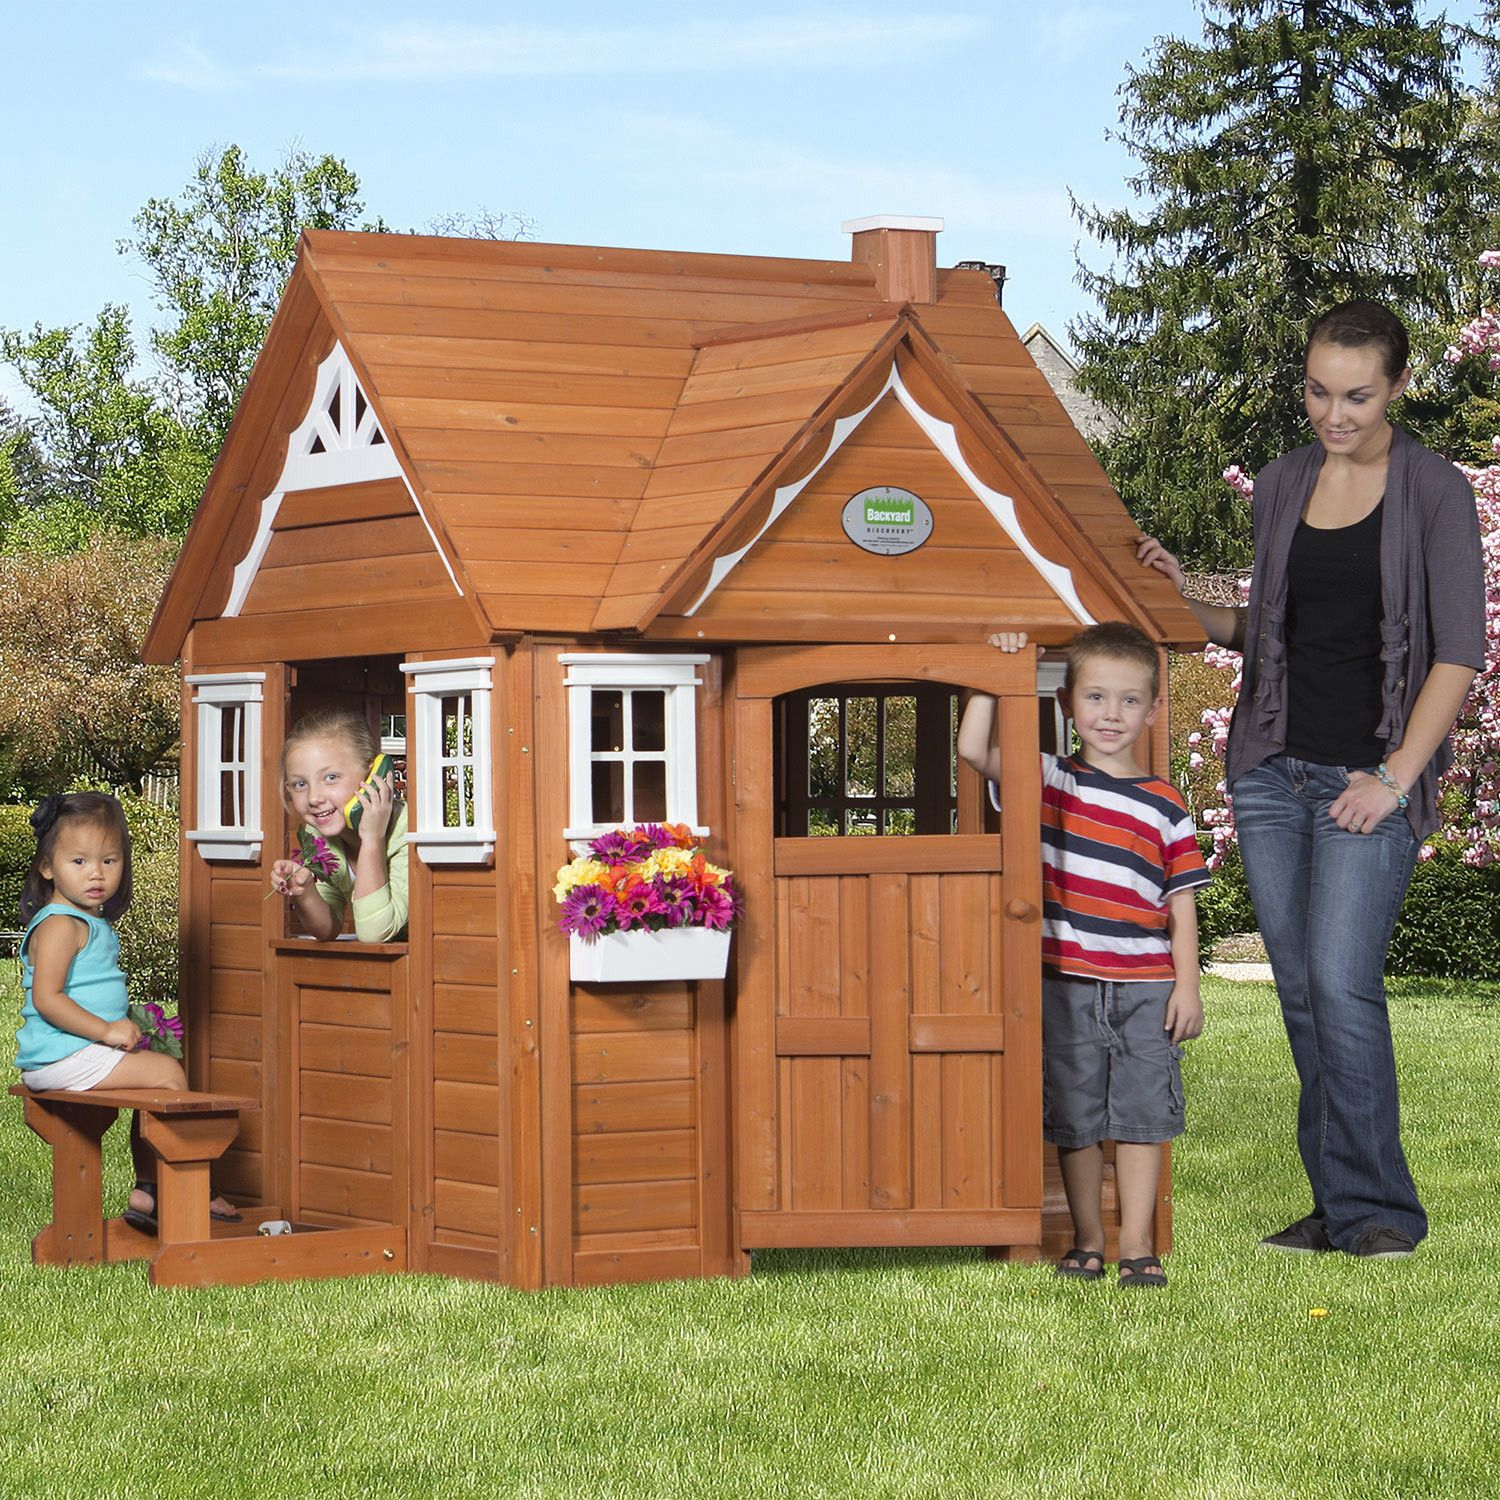 Etonnant Outdoor Wooden Cedar Cottage Play House For Kids | Backyard Discovery